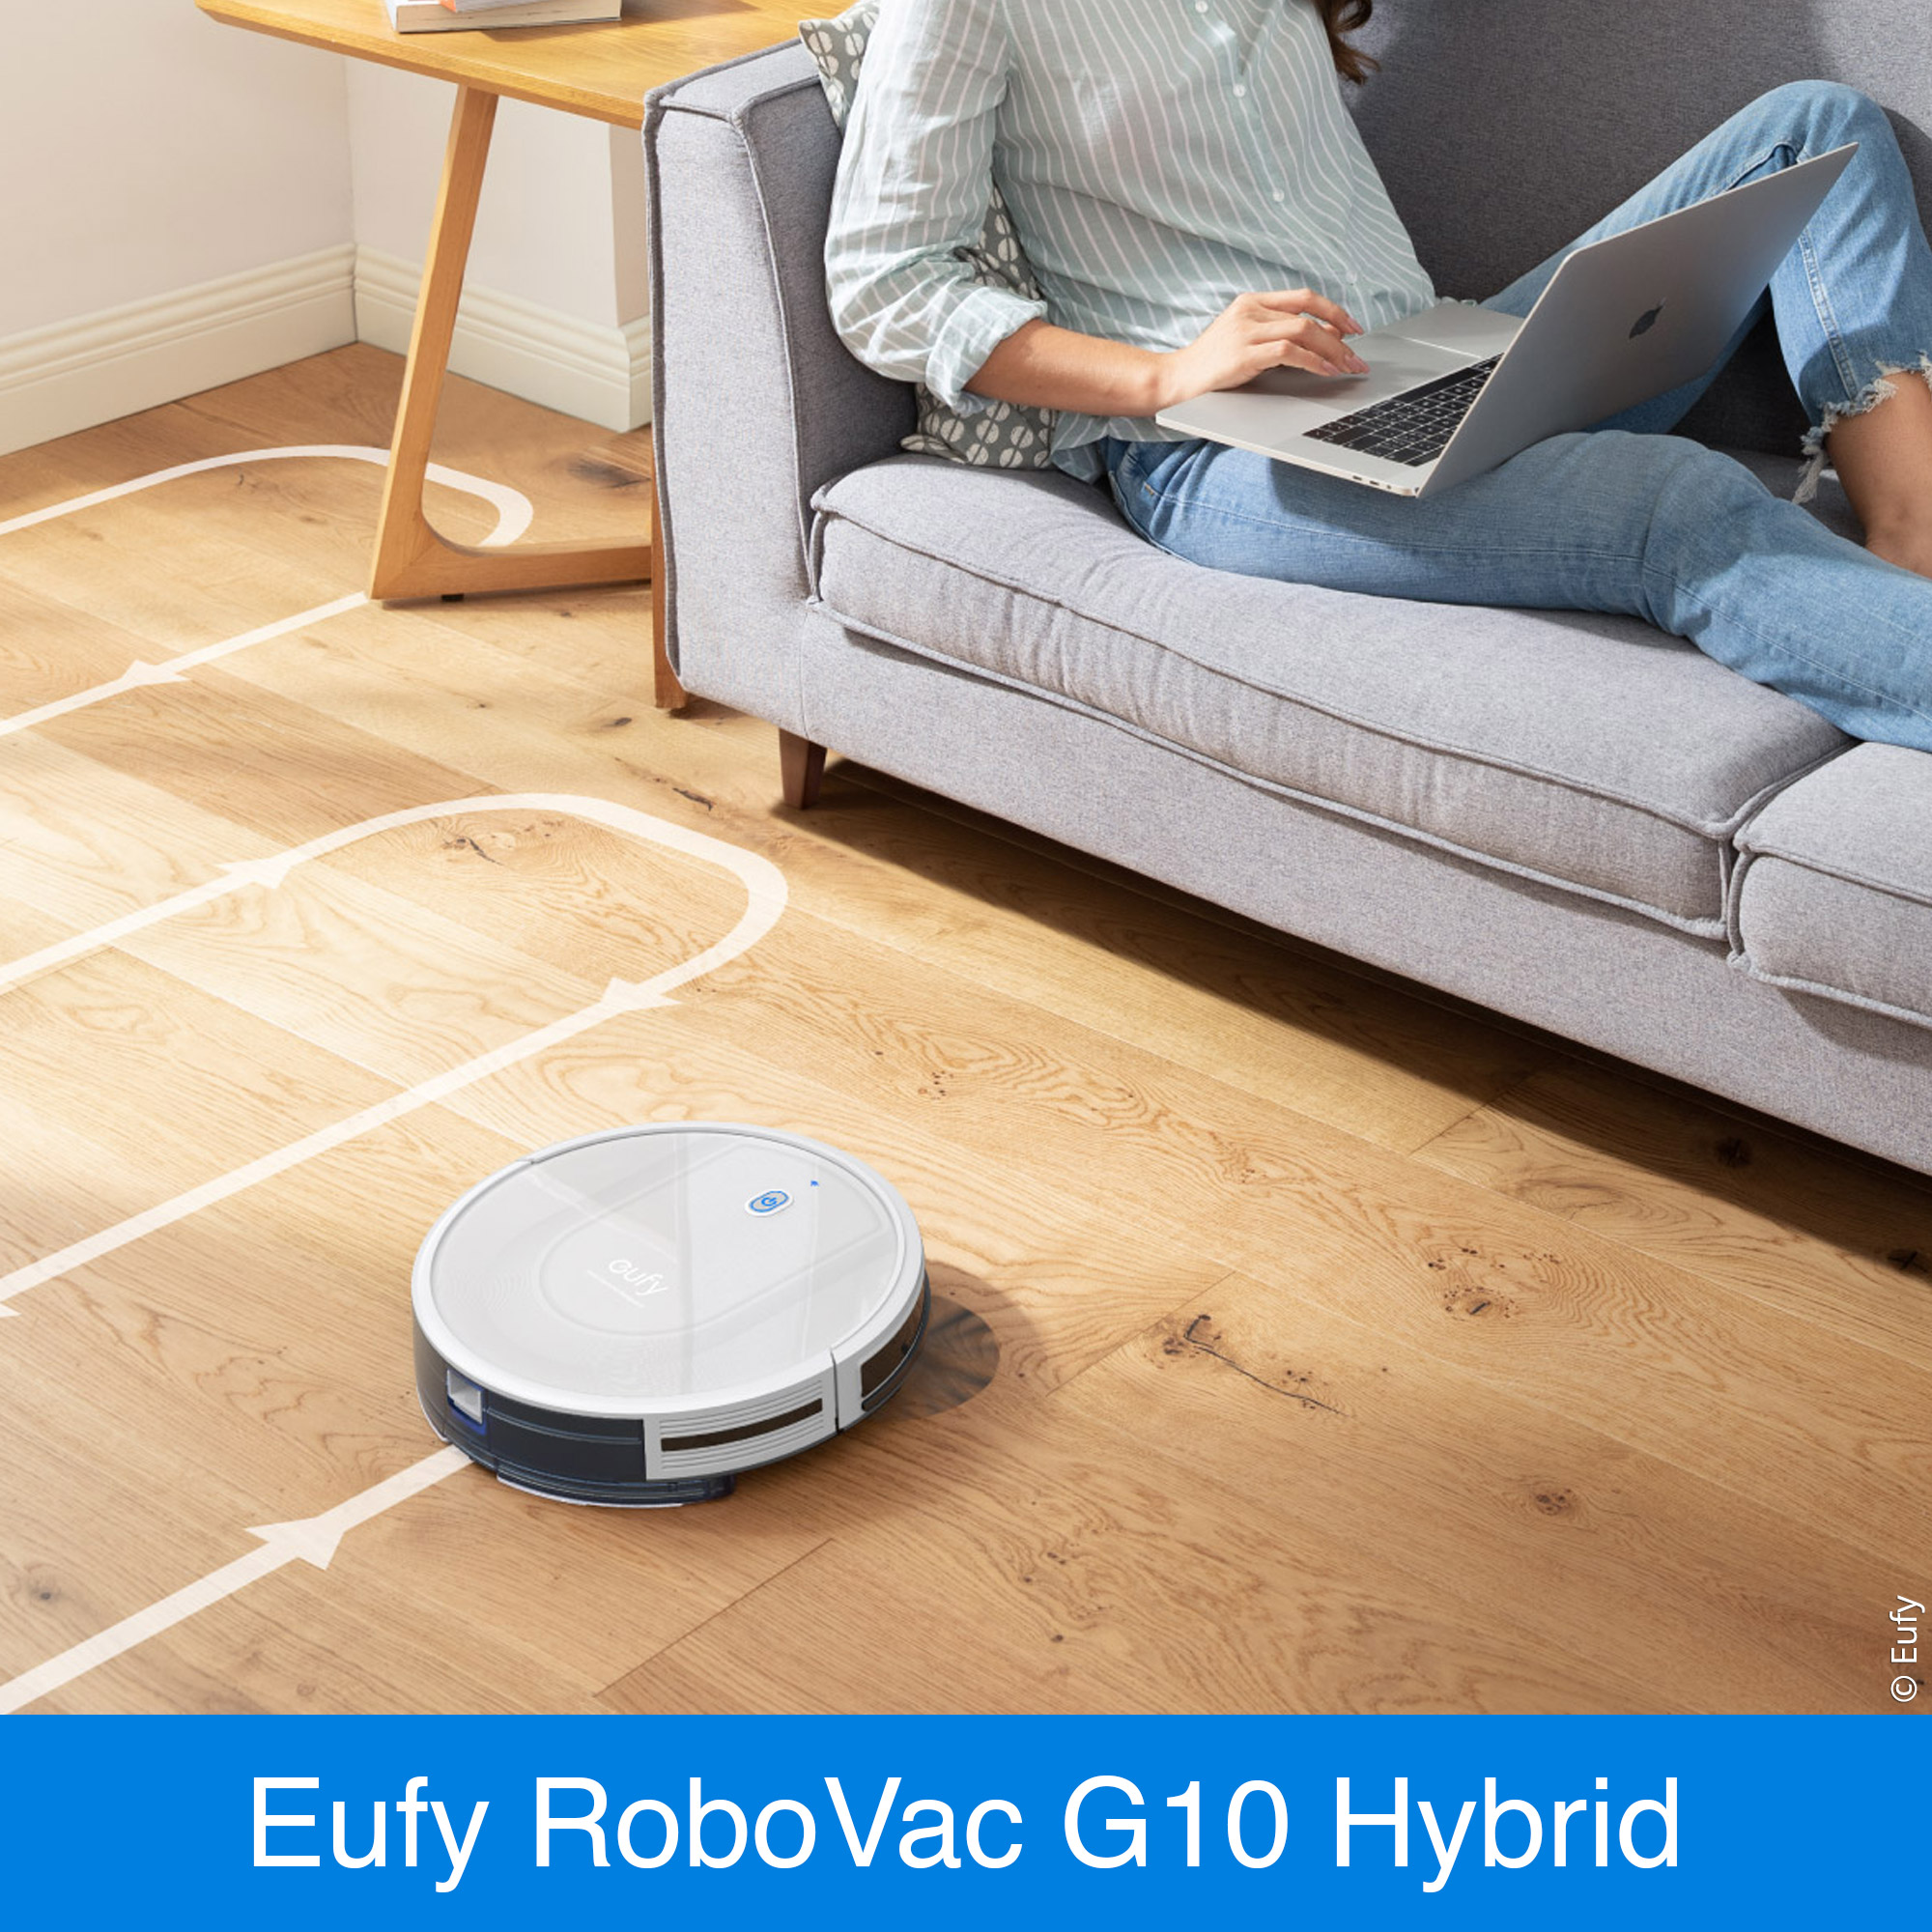 Smart Dynamic Navigation des RoboVac G10 Hybrid